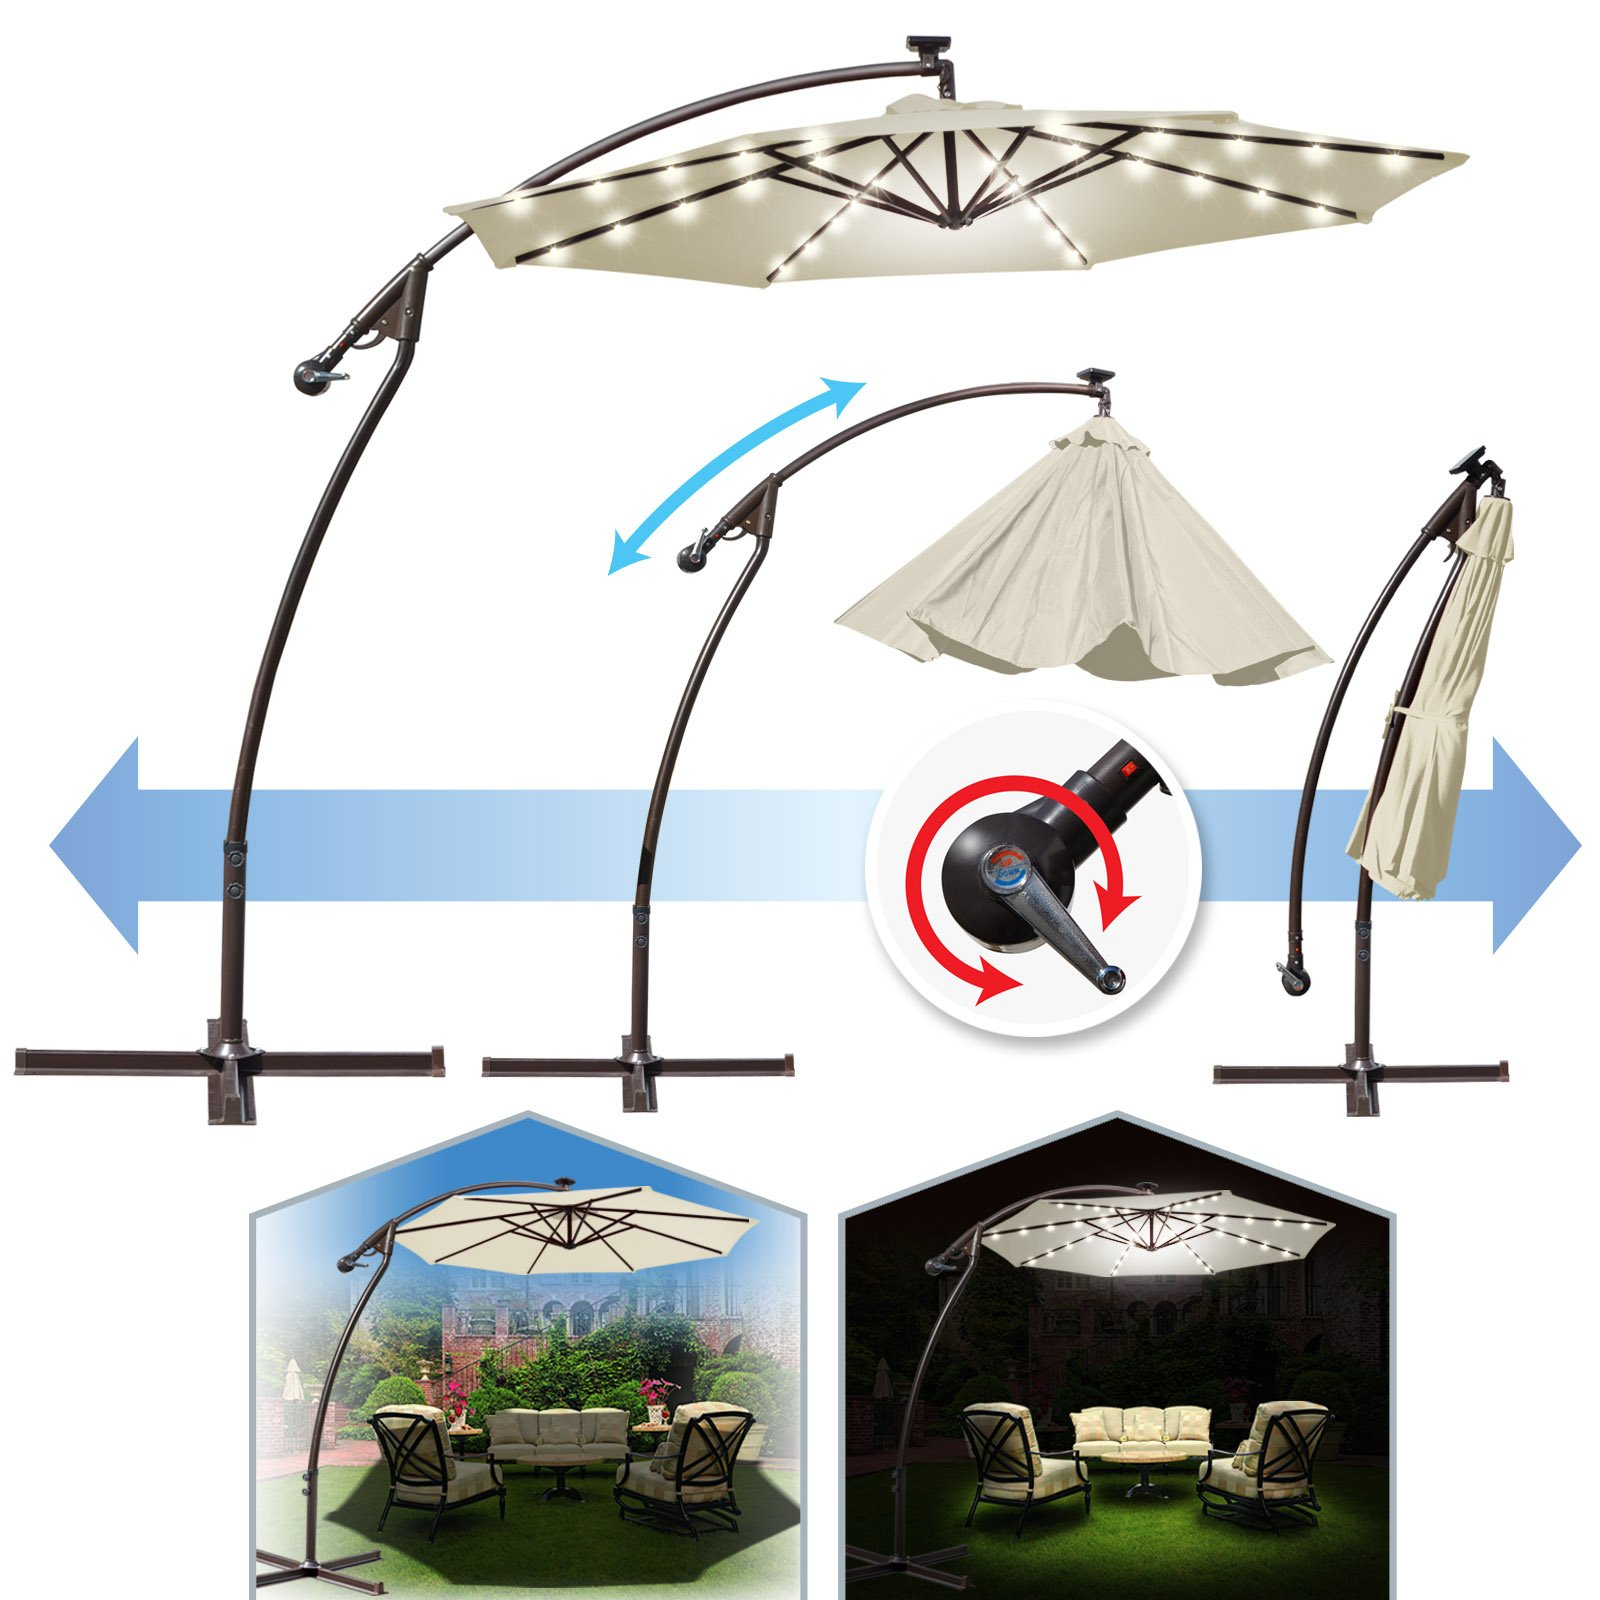 BenefitUSA 9' Cantilever 40 LED Light Patio Umbrella Outdoor Garden Sunshade (Ecru)